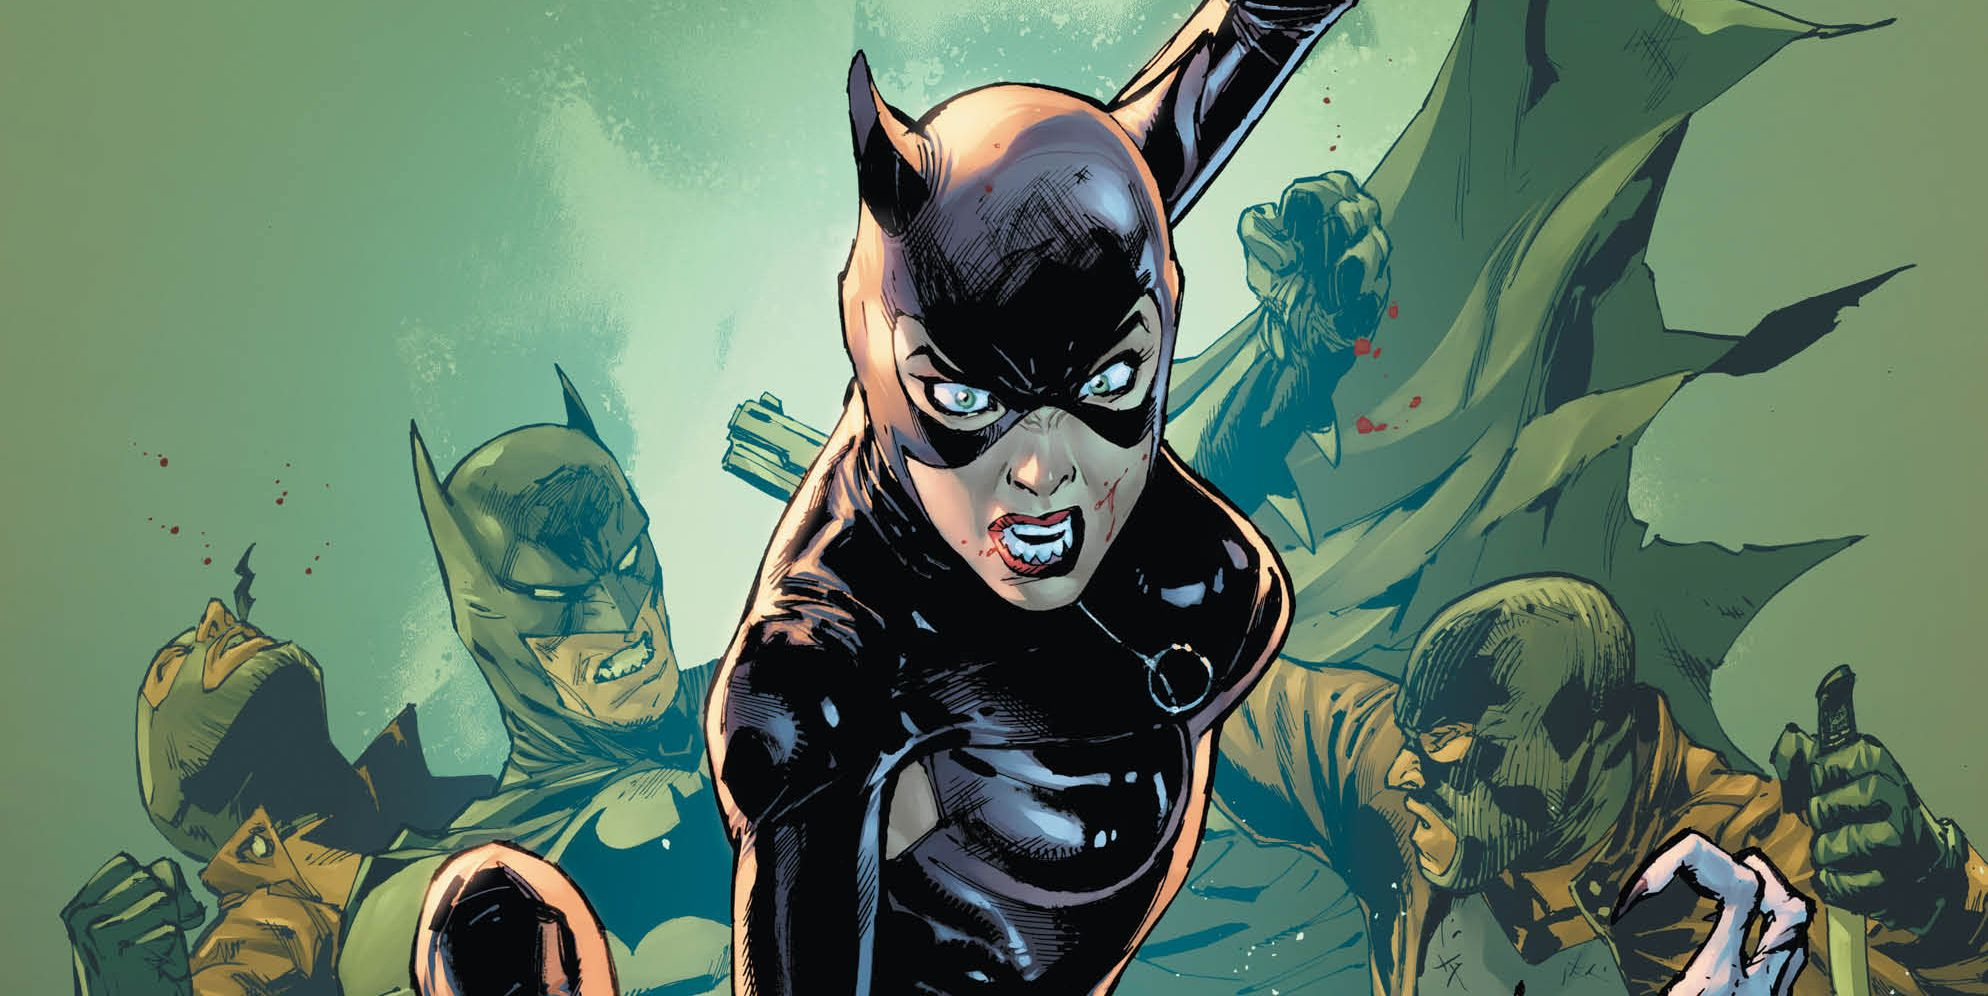 EXCL: Batman #79 Preview Looks Back at Selina and Bruce's First Encounter